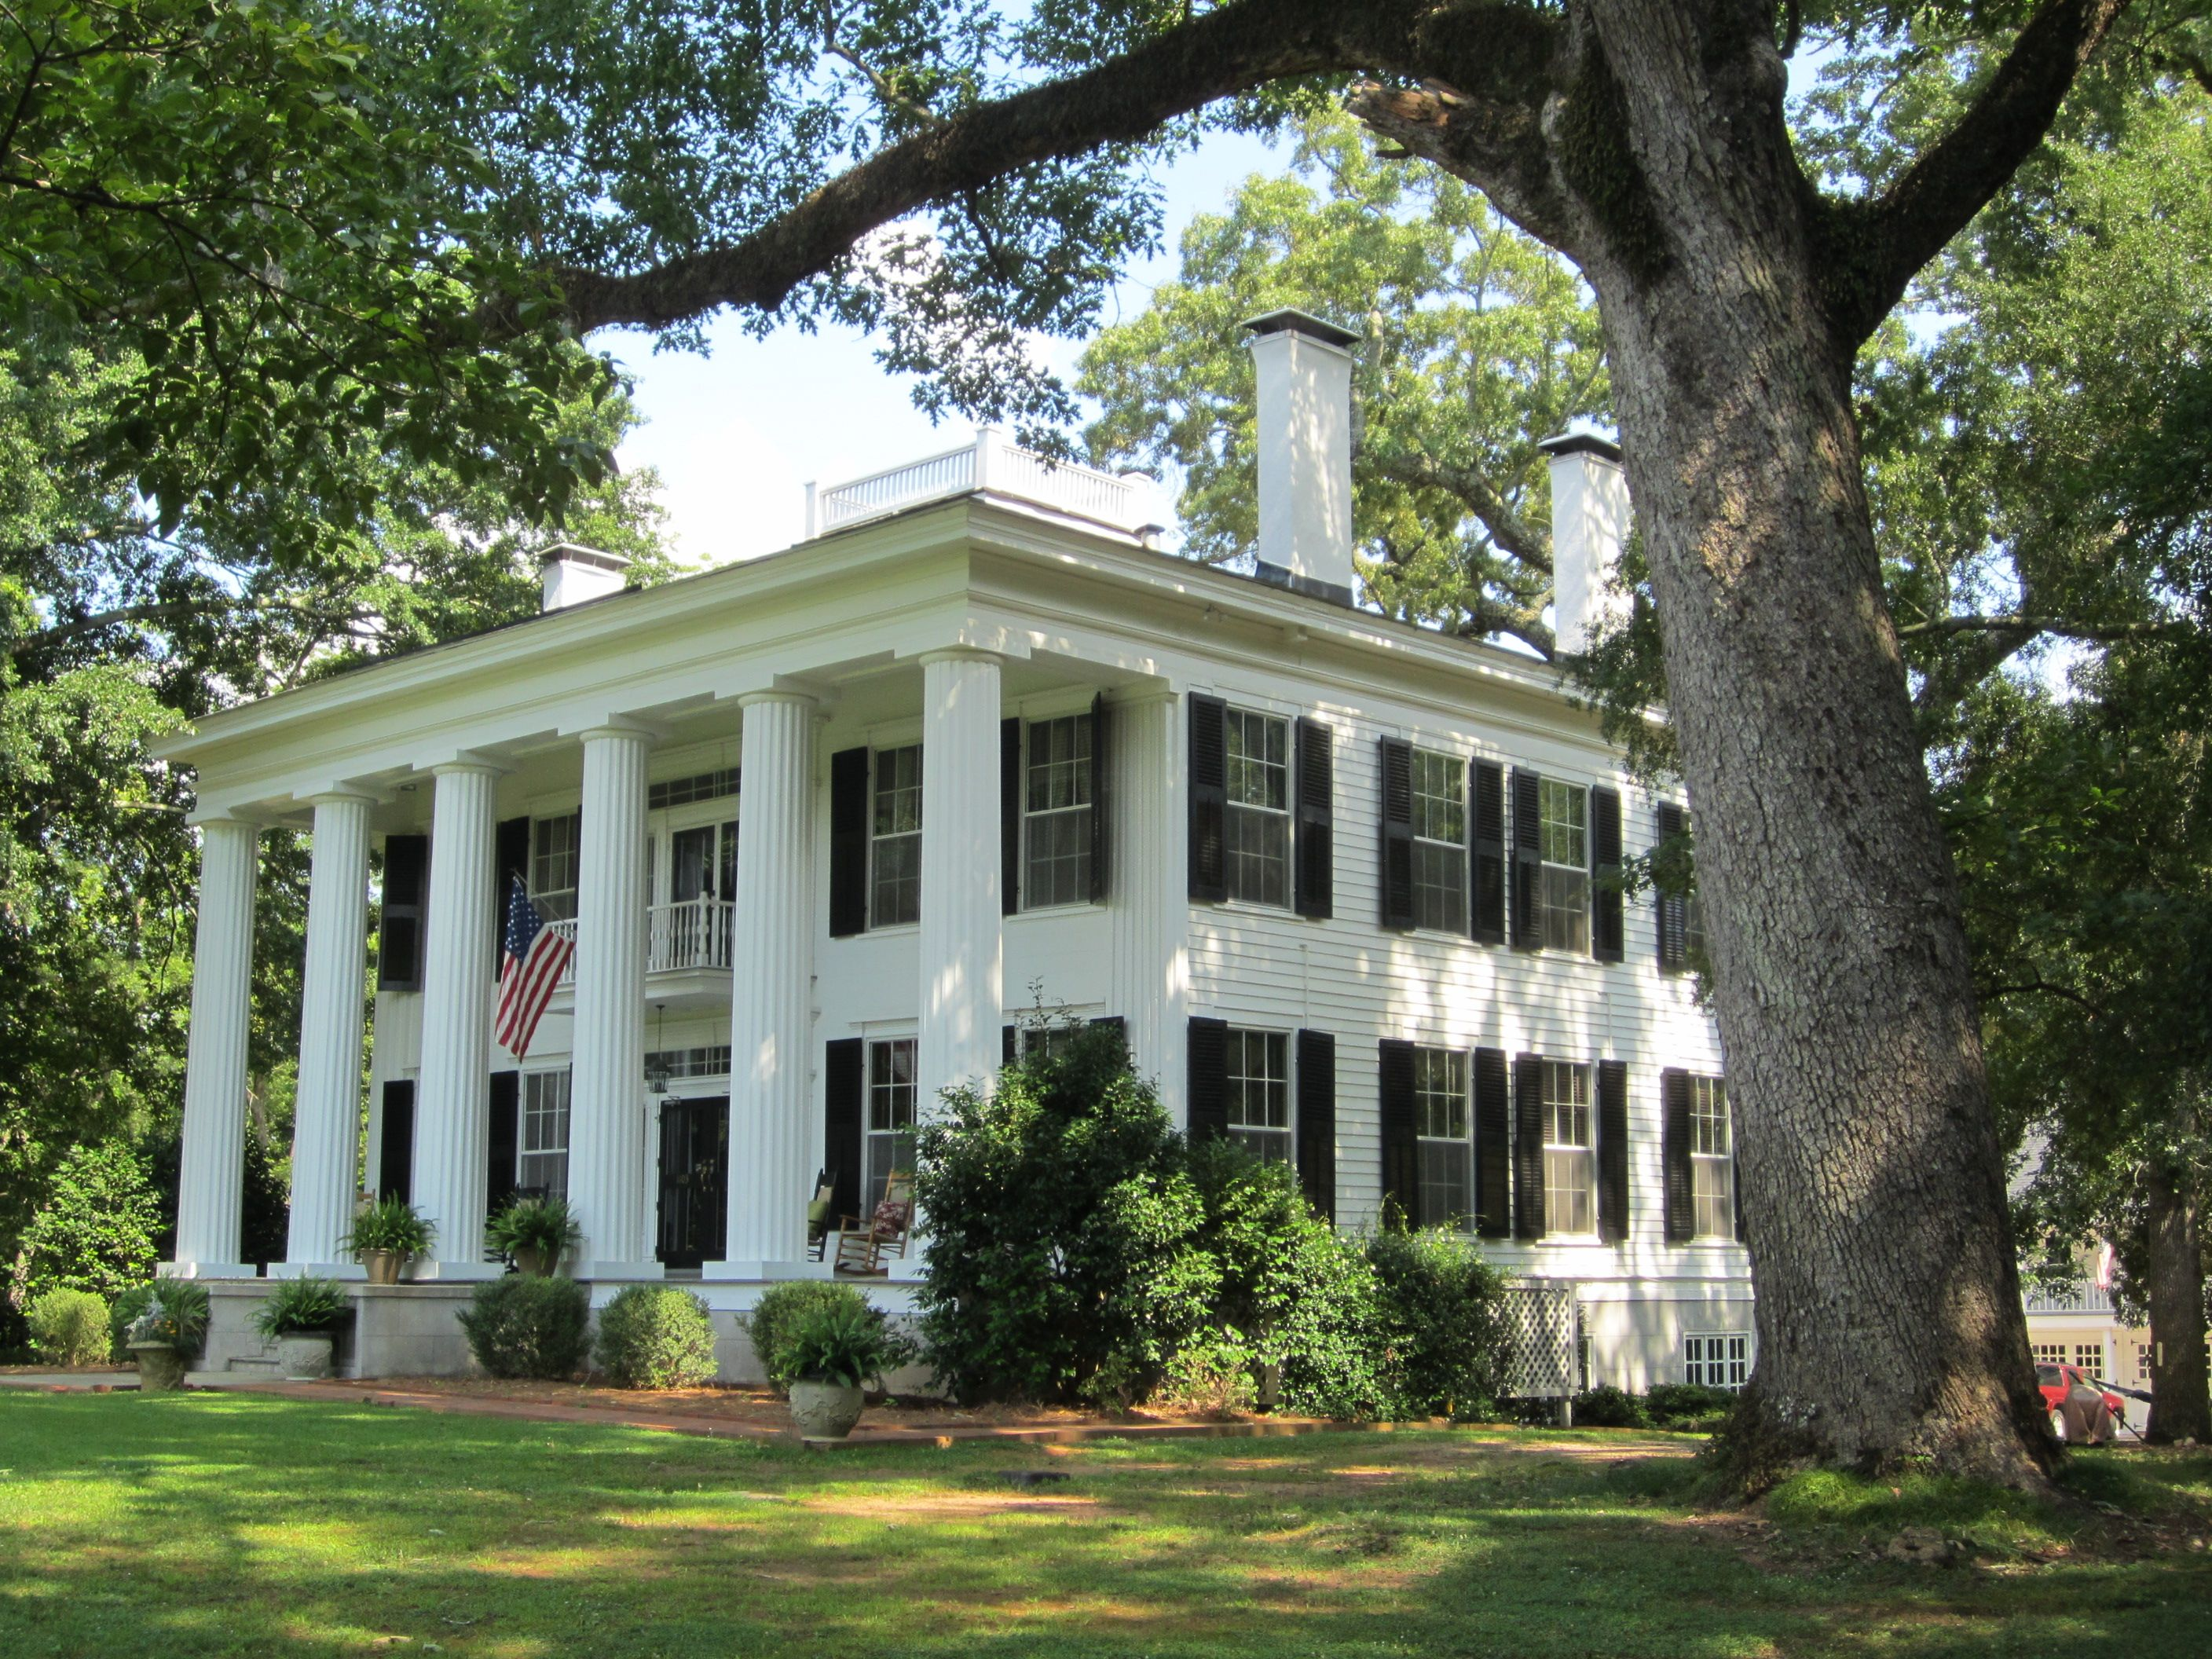 The Oaks Lagrange Ga The Oaks Is The Boyhood Home Of Lamar Dodd The Most Recognized Georgia Artis Southern Architecture Old Southern Homes Antebellum Homes